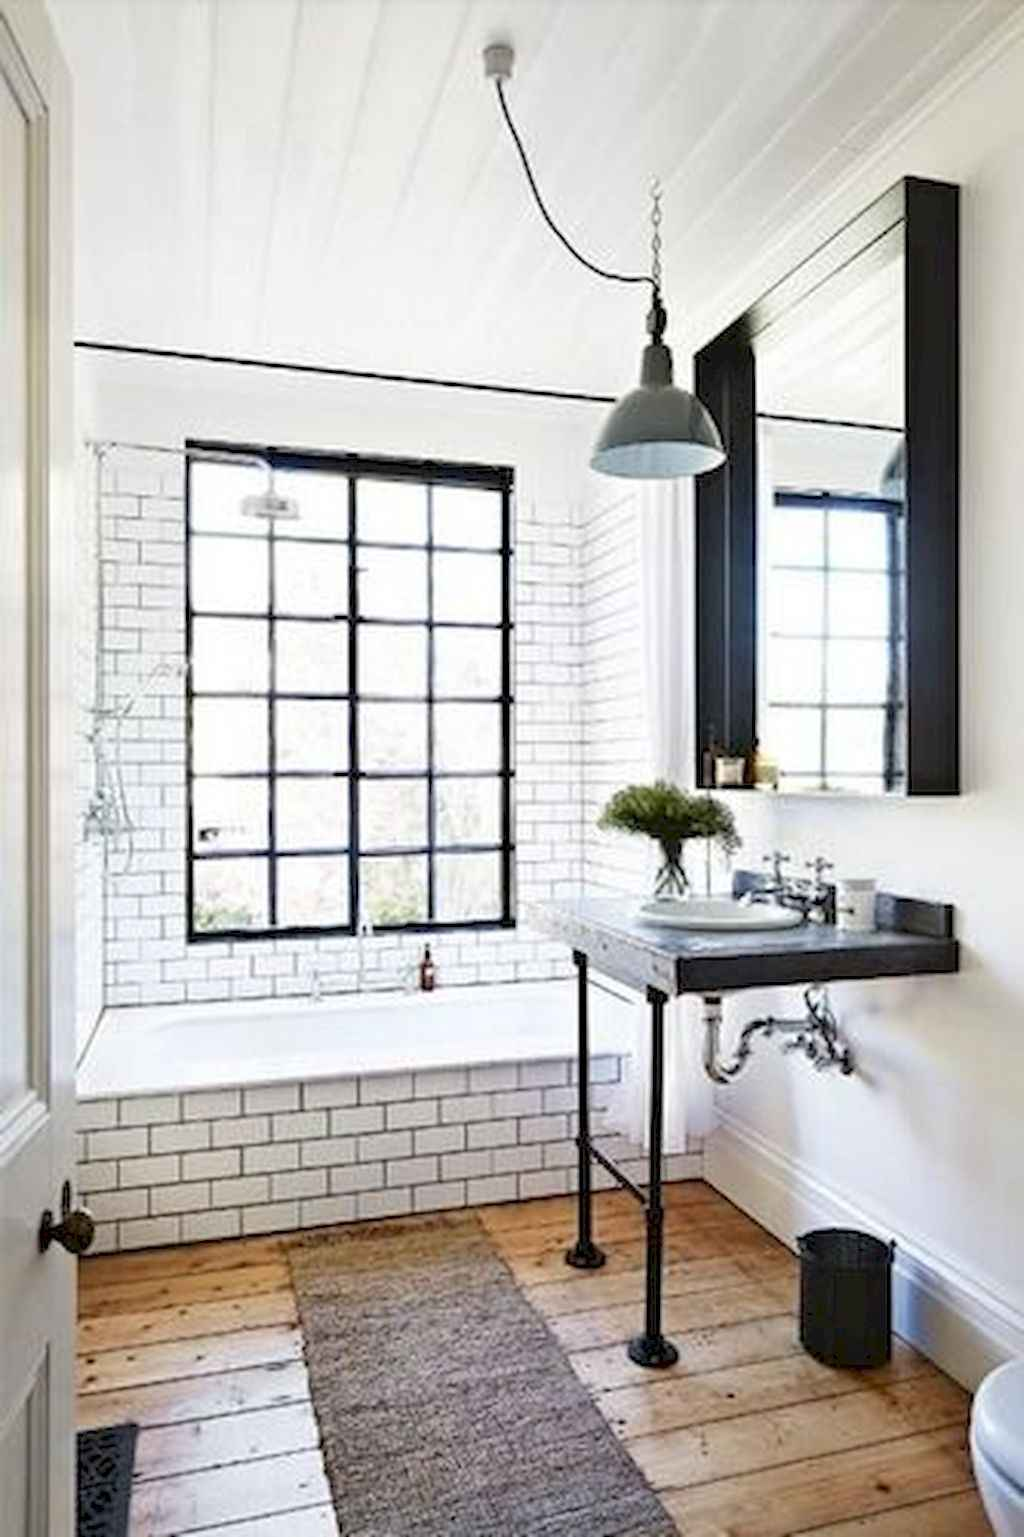 111 awesome small bathroom remodel ideas on a budget (102)